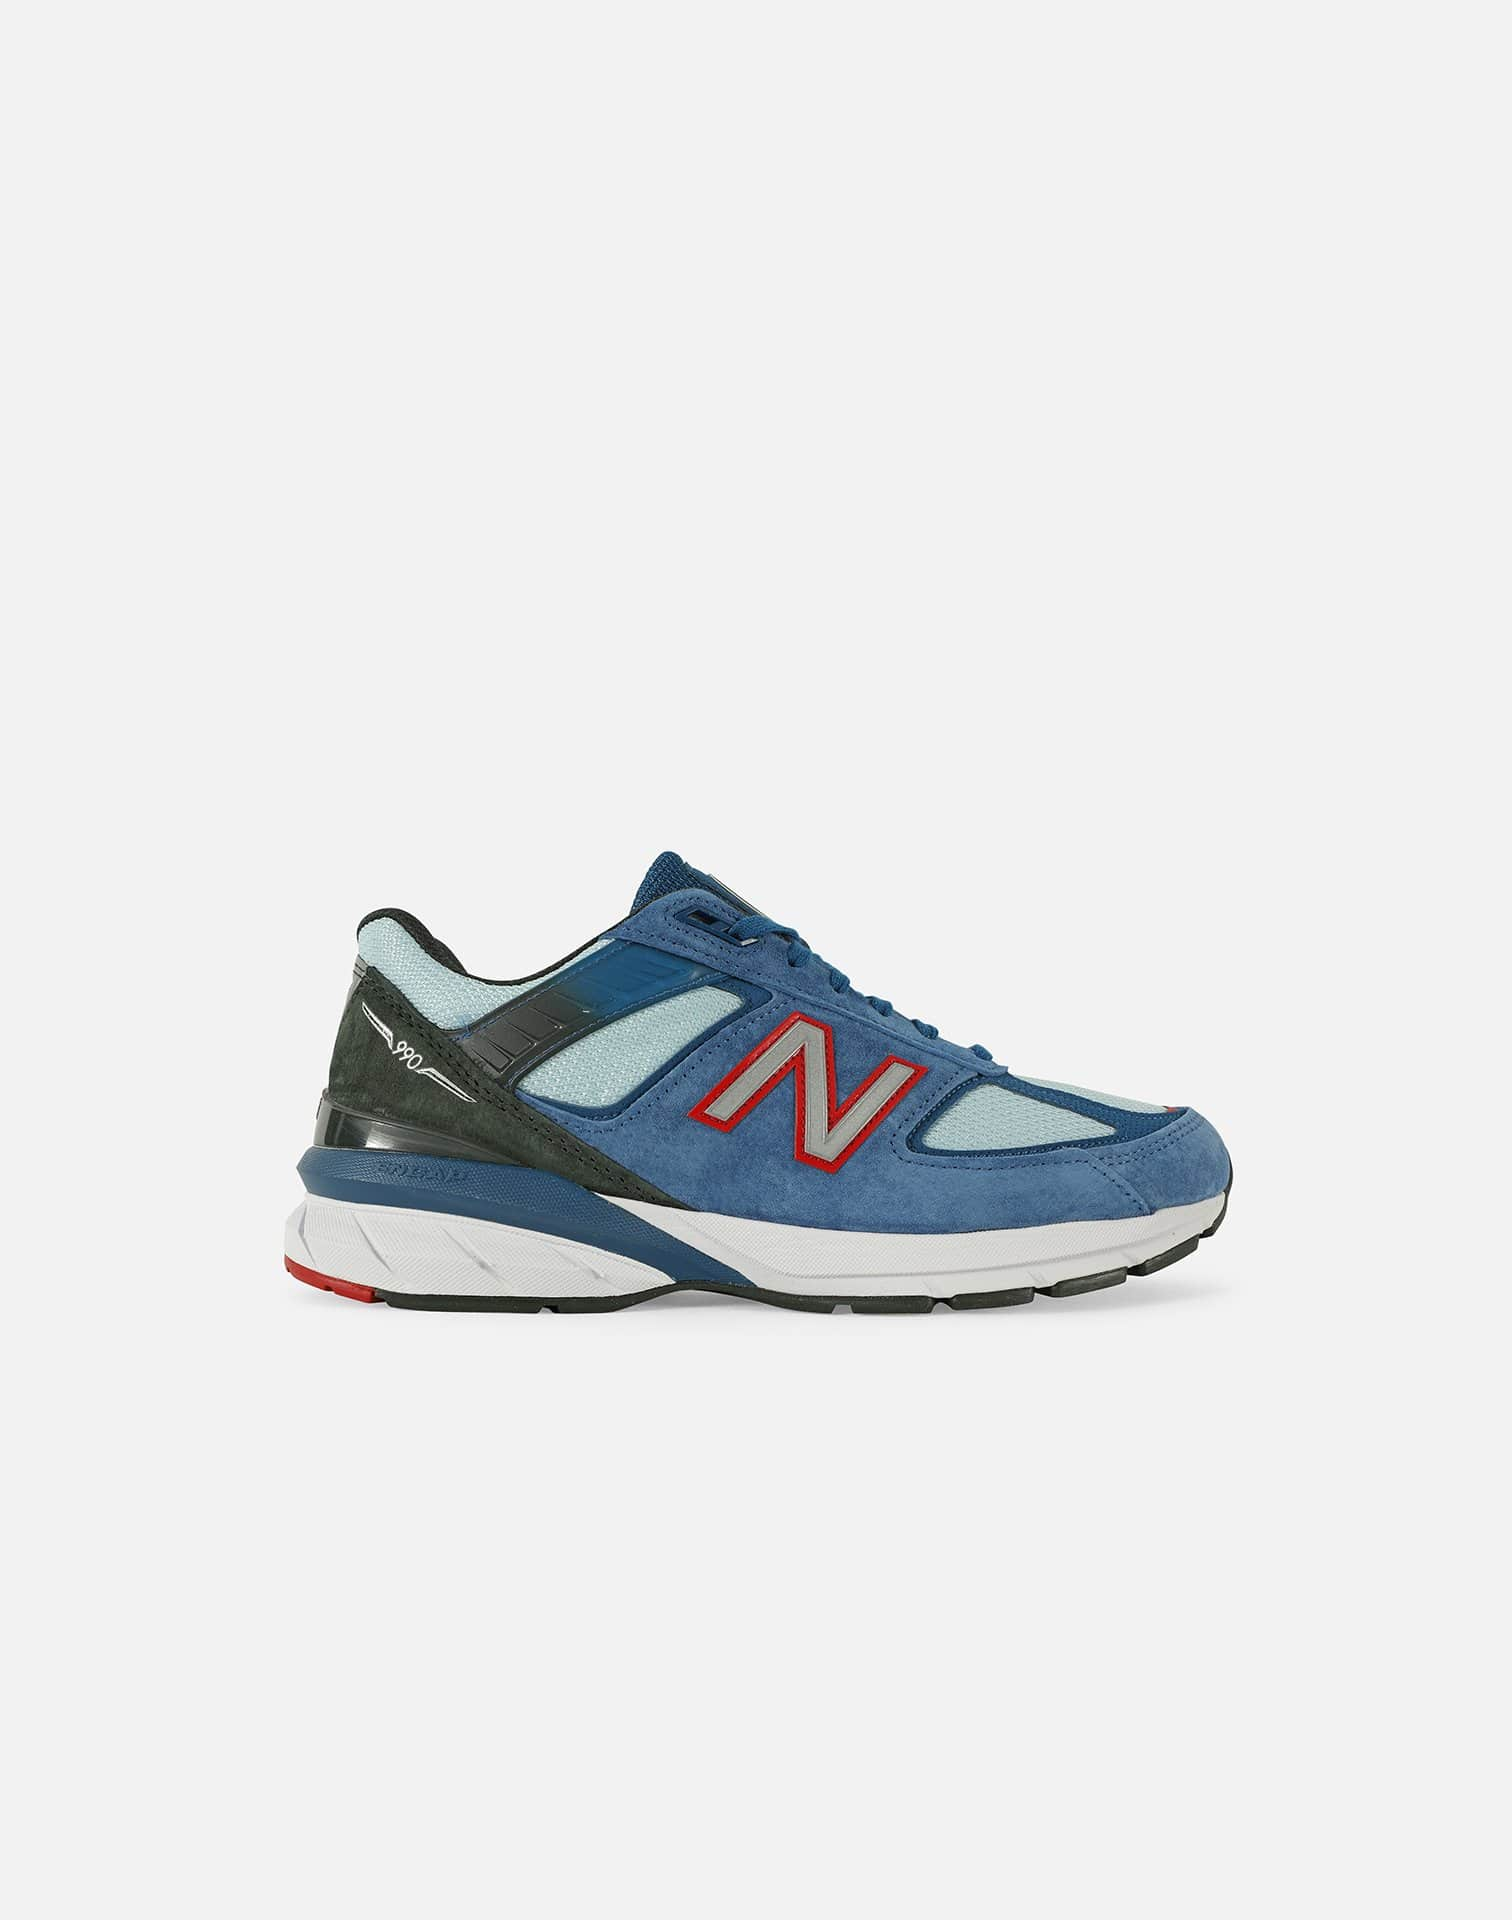 NewBalance 990V5 'BLUE CRAB' GRADE-SCHOOL